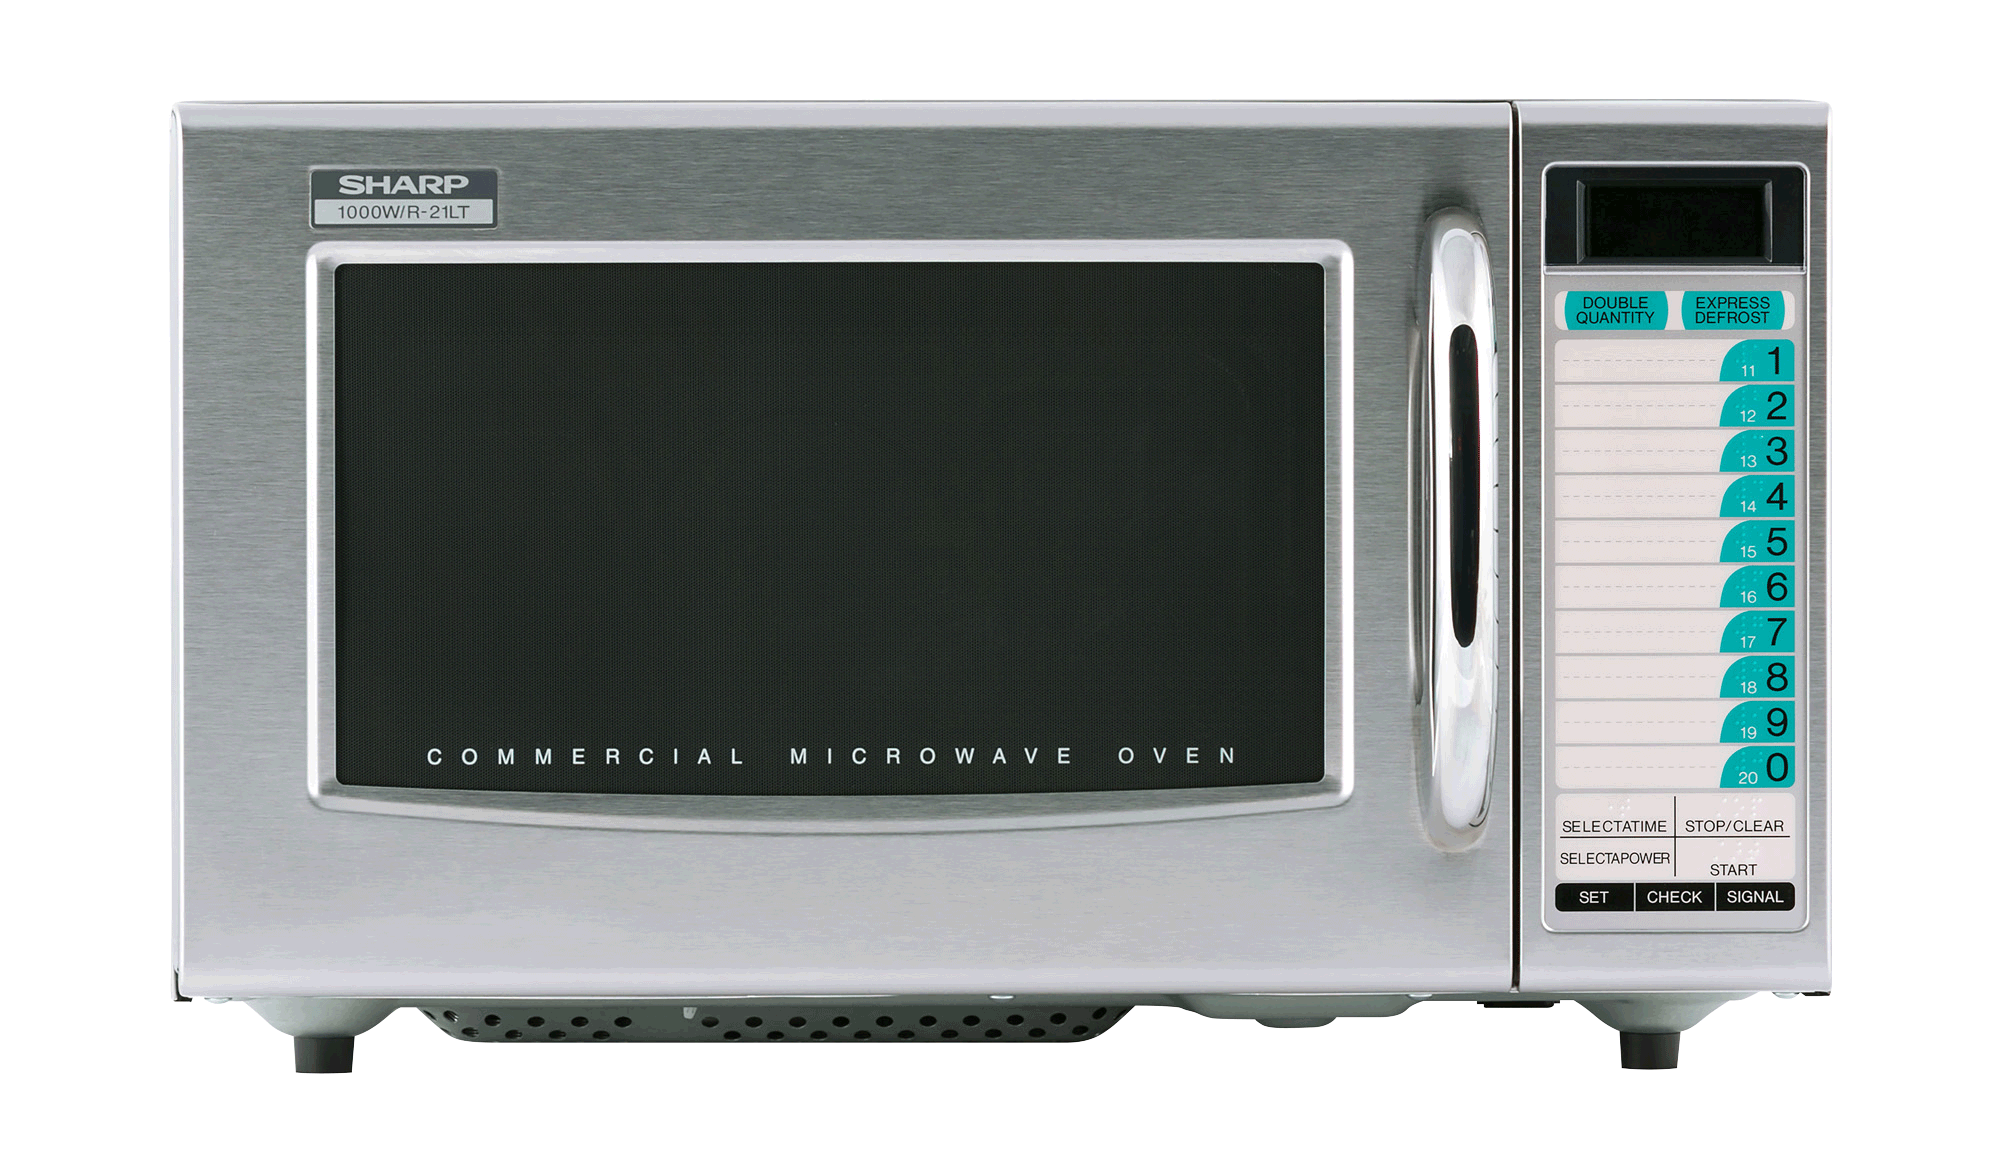 R ltf commercial microwave. Electronics drawing home appliance clipart library